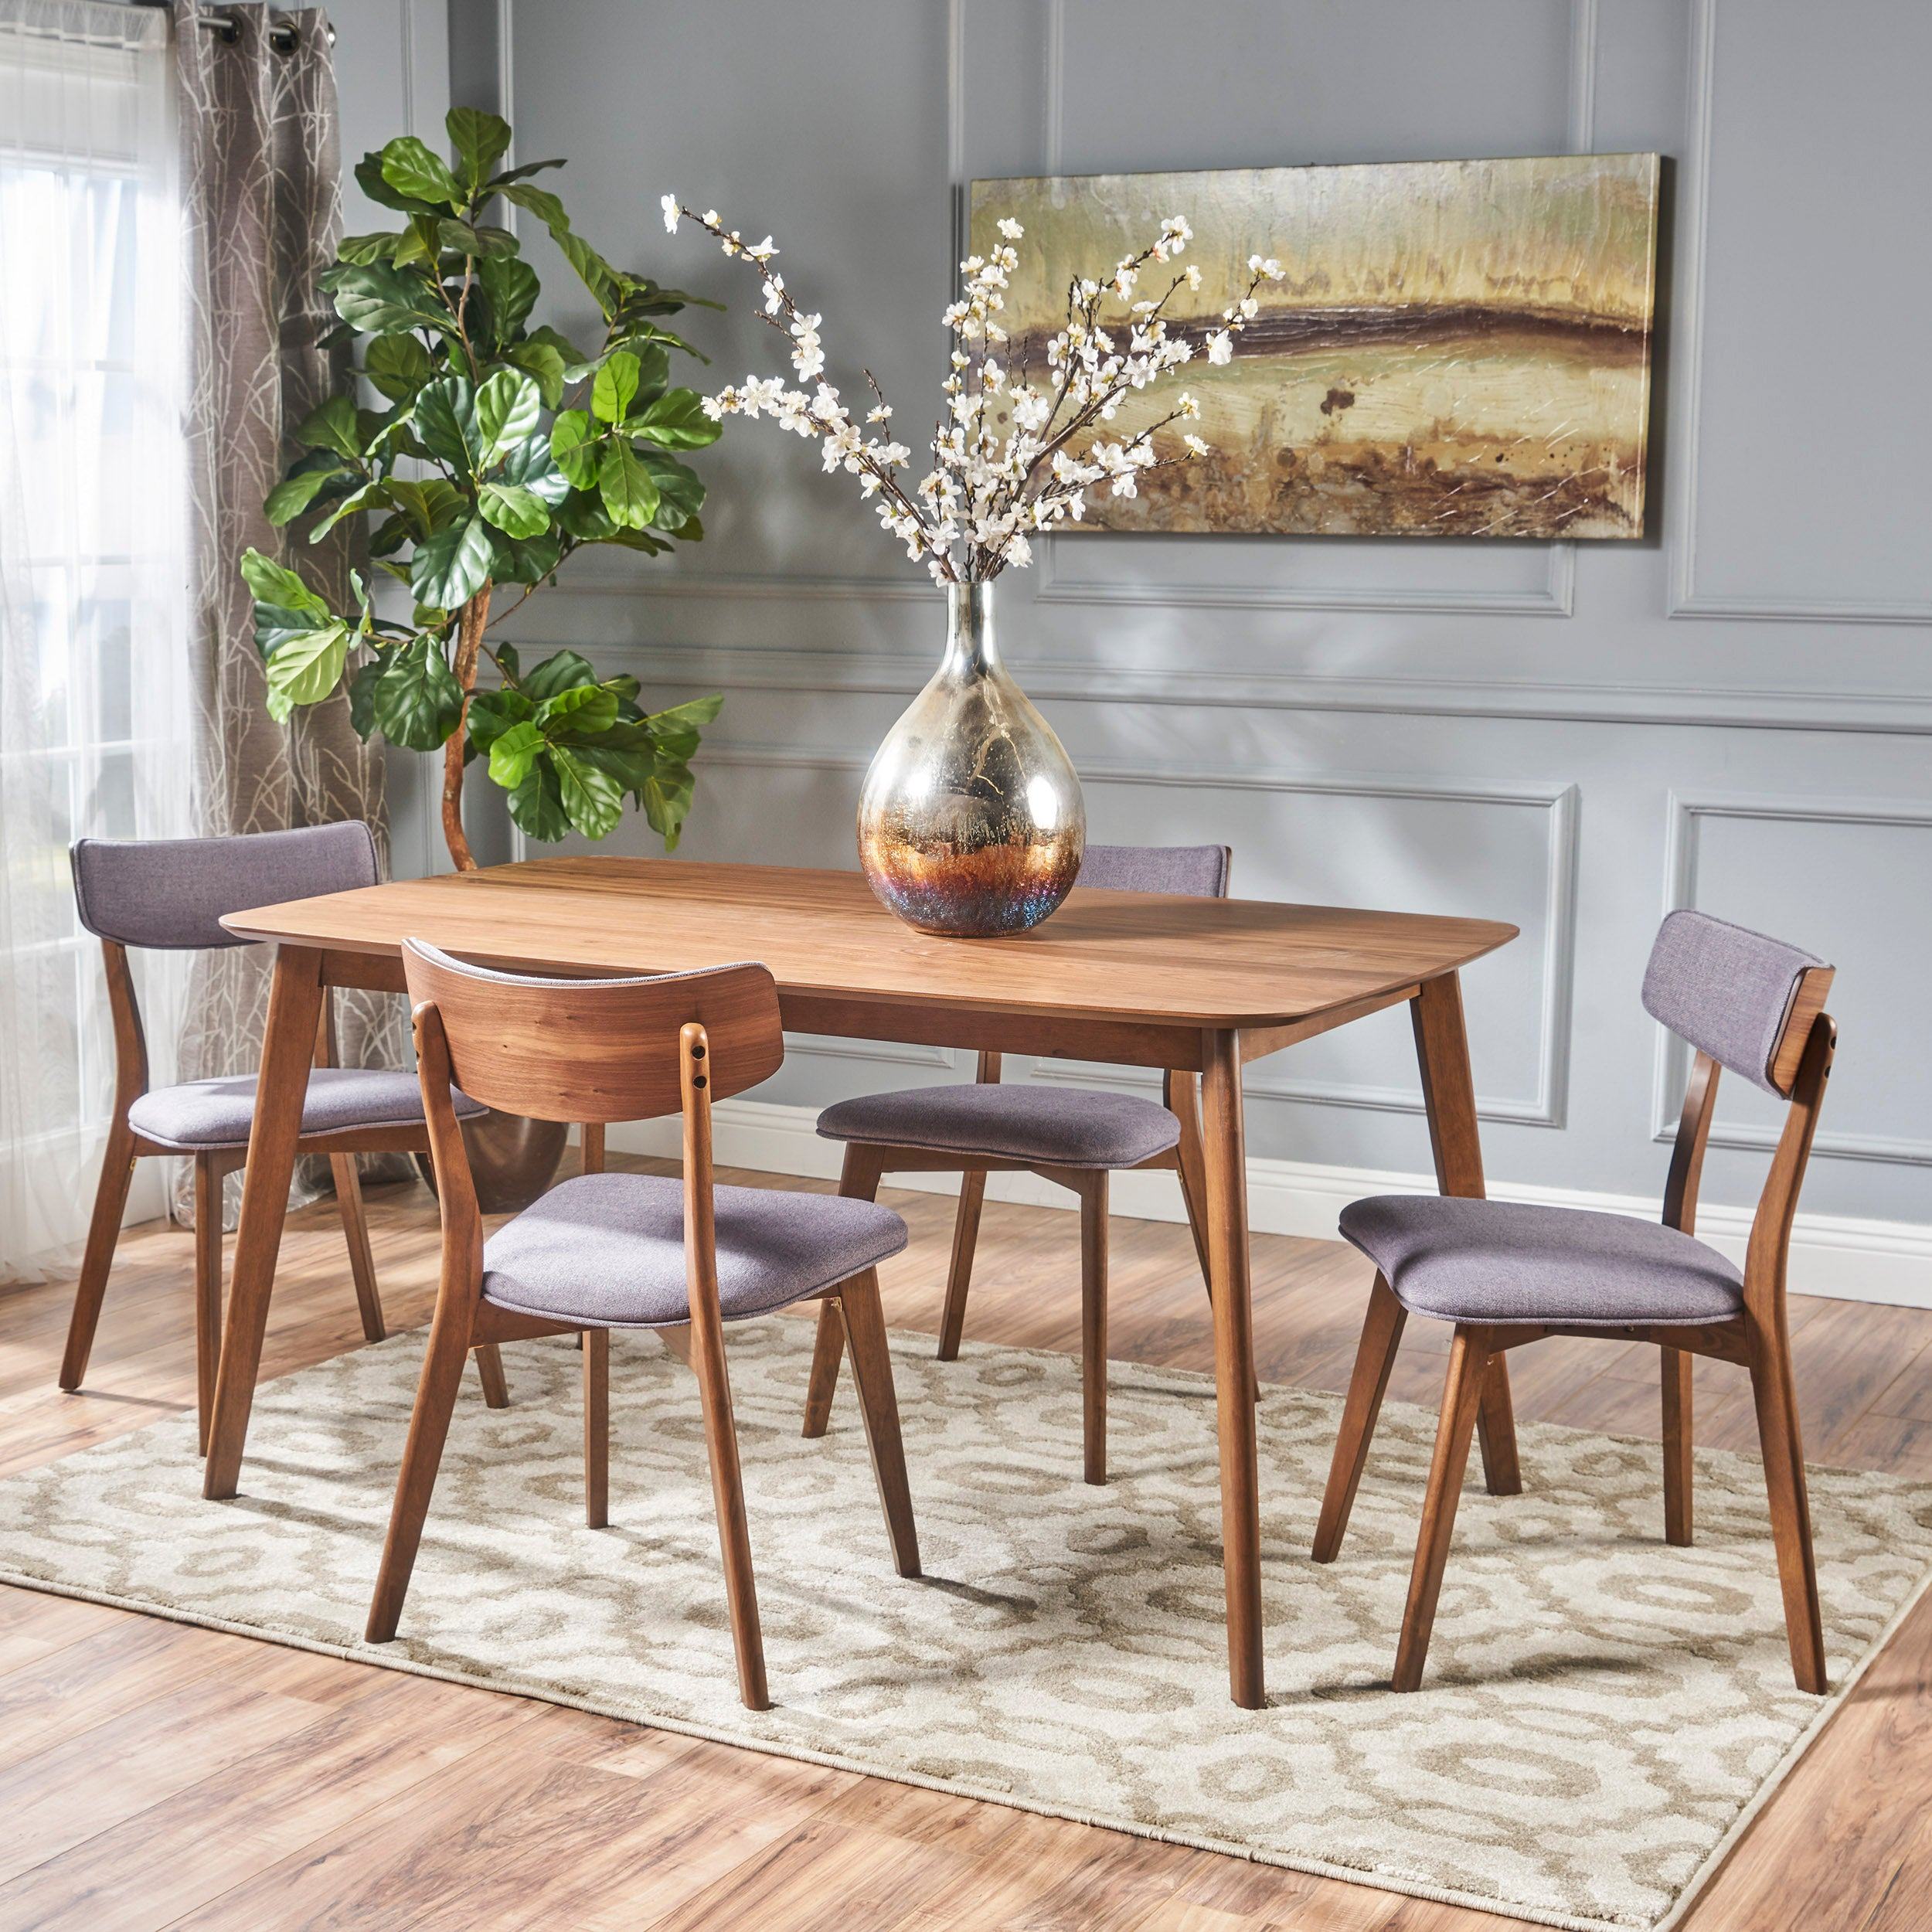 Aman Mid Century Finished 5 Piece Wood Dining Set with Fabric Chairs Light Beige Natural Walnut